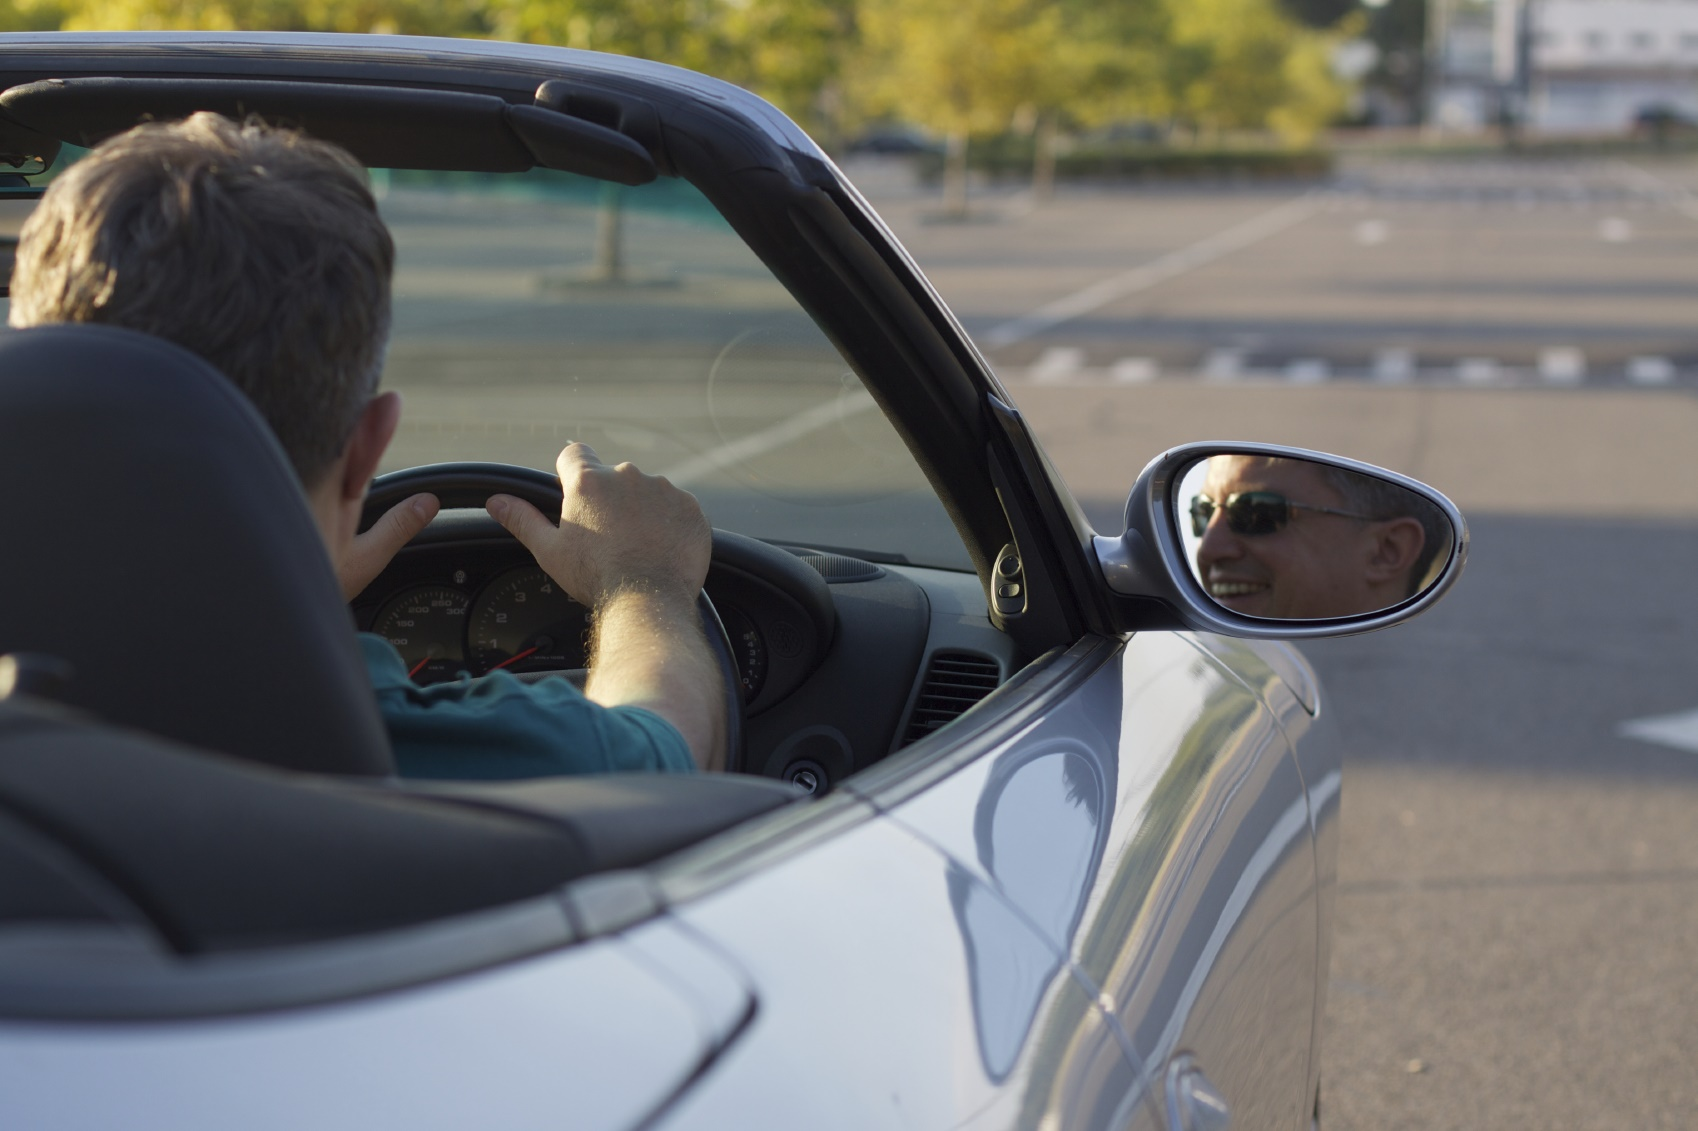 Man driving a convertible sports car. Smiling and enjoying the moment.